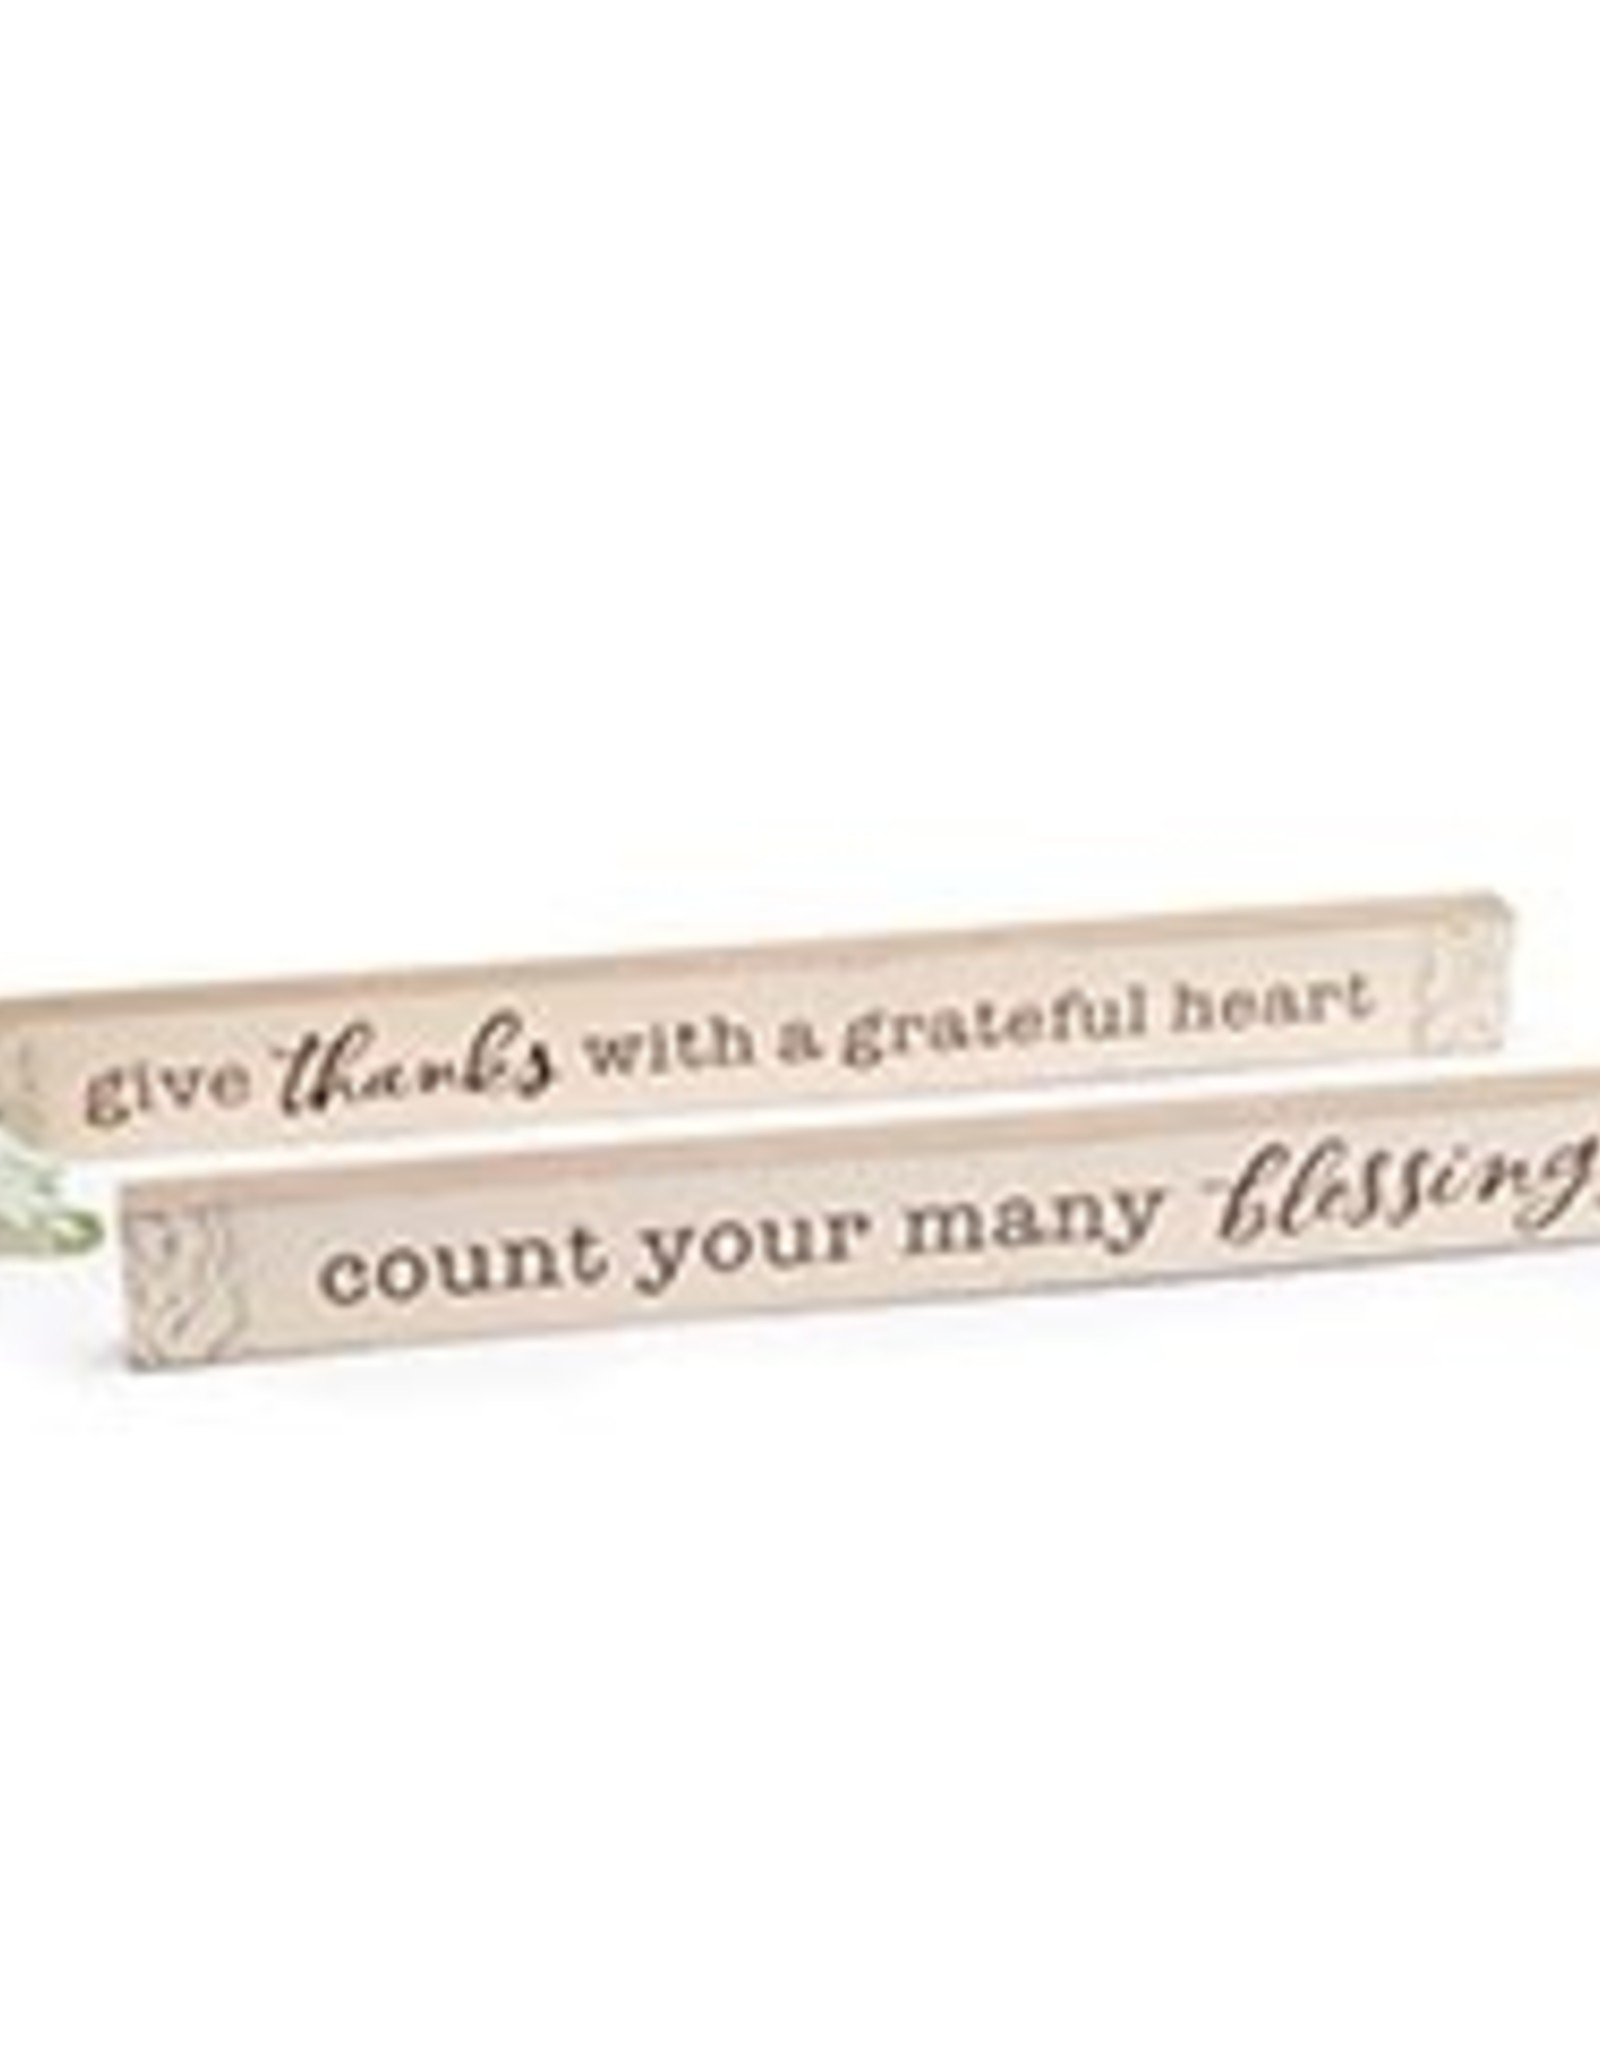 Wink Shelf Sitter Distressed Cream Tin/Give Thanks with a Grateful Heart